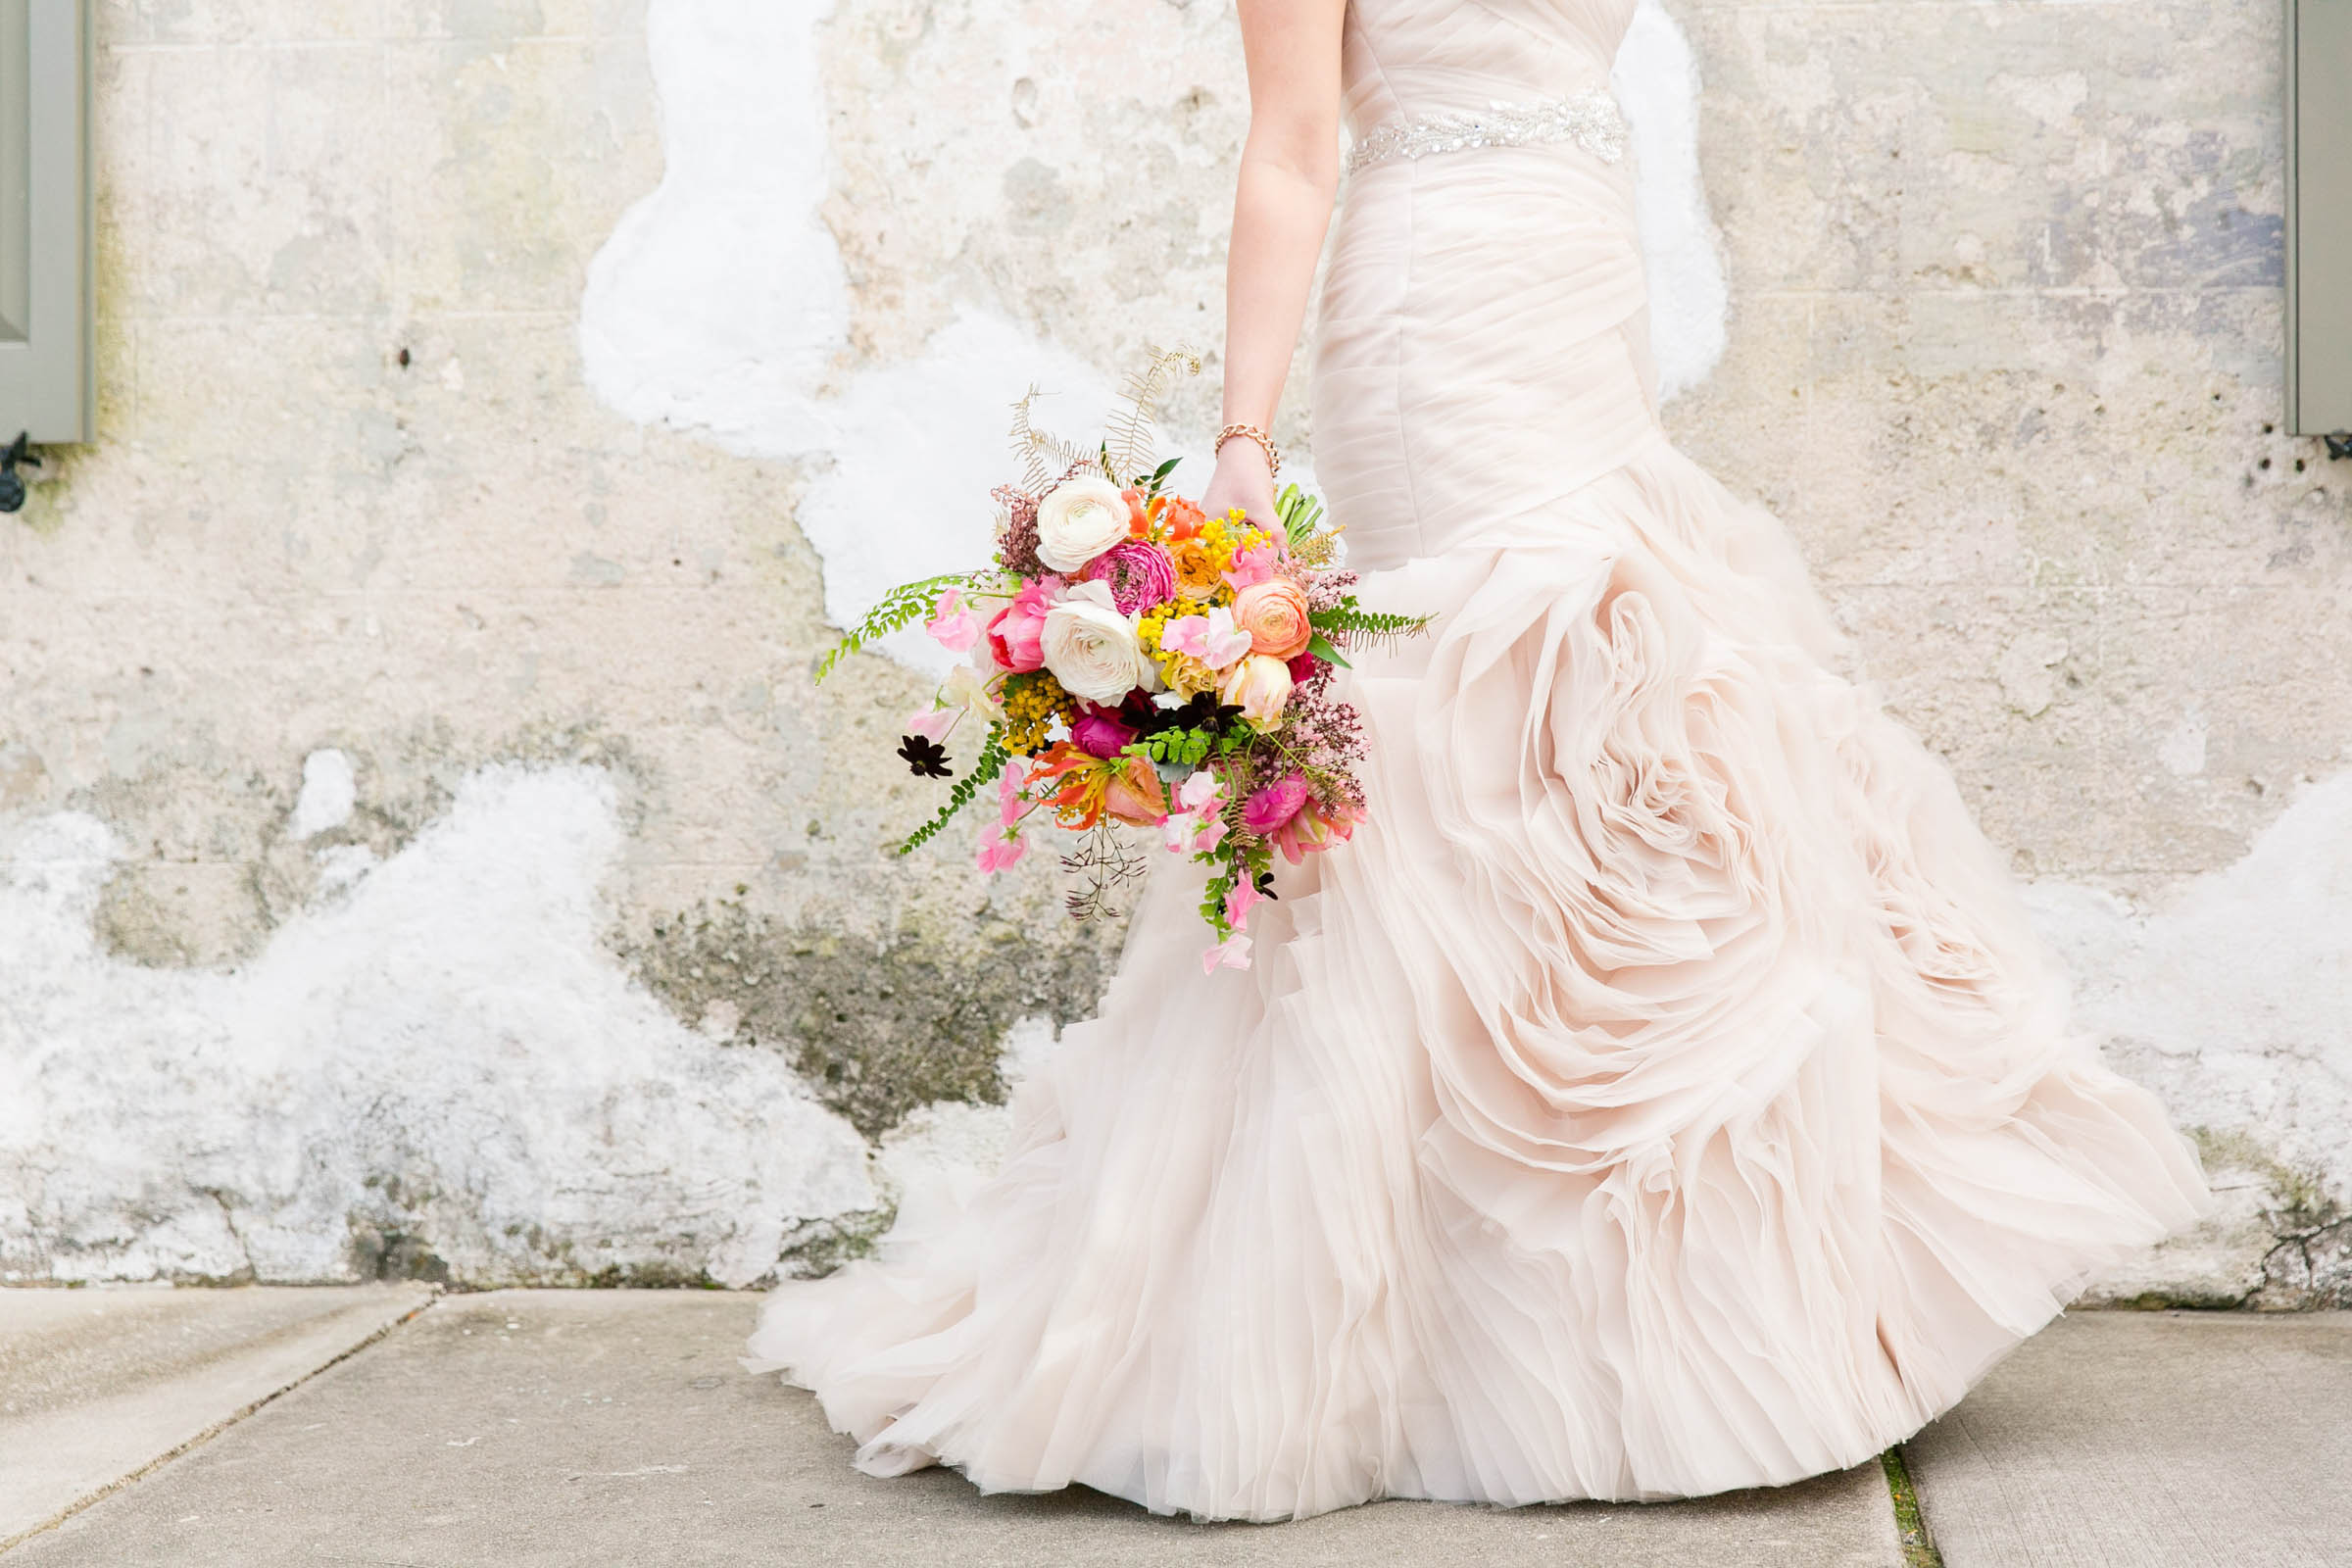 Ranunculus and sweet pea wedding bouquet - photo by Dana Cubbage featured-blush-bridal-gown-with-rose-shaped-ruffled-detail-dana-cubbage-weddings.jpg